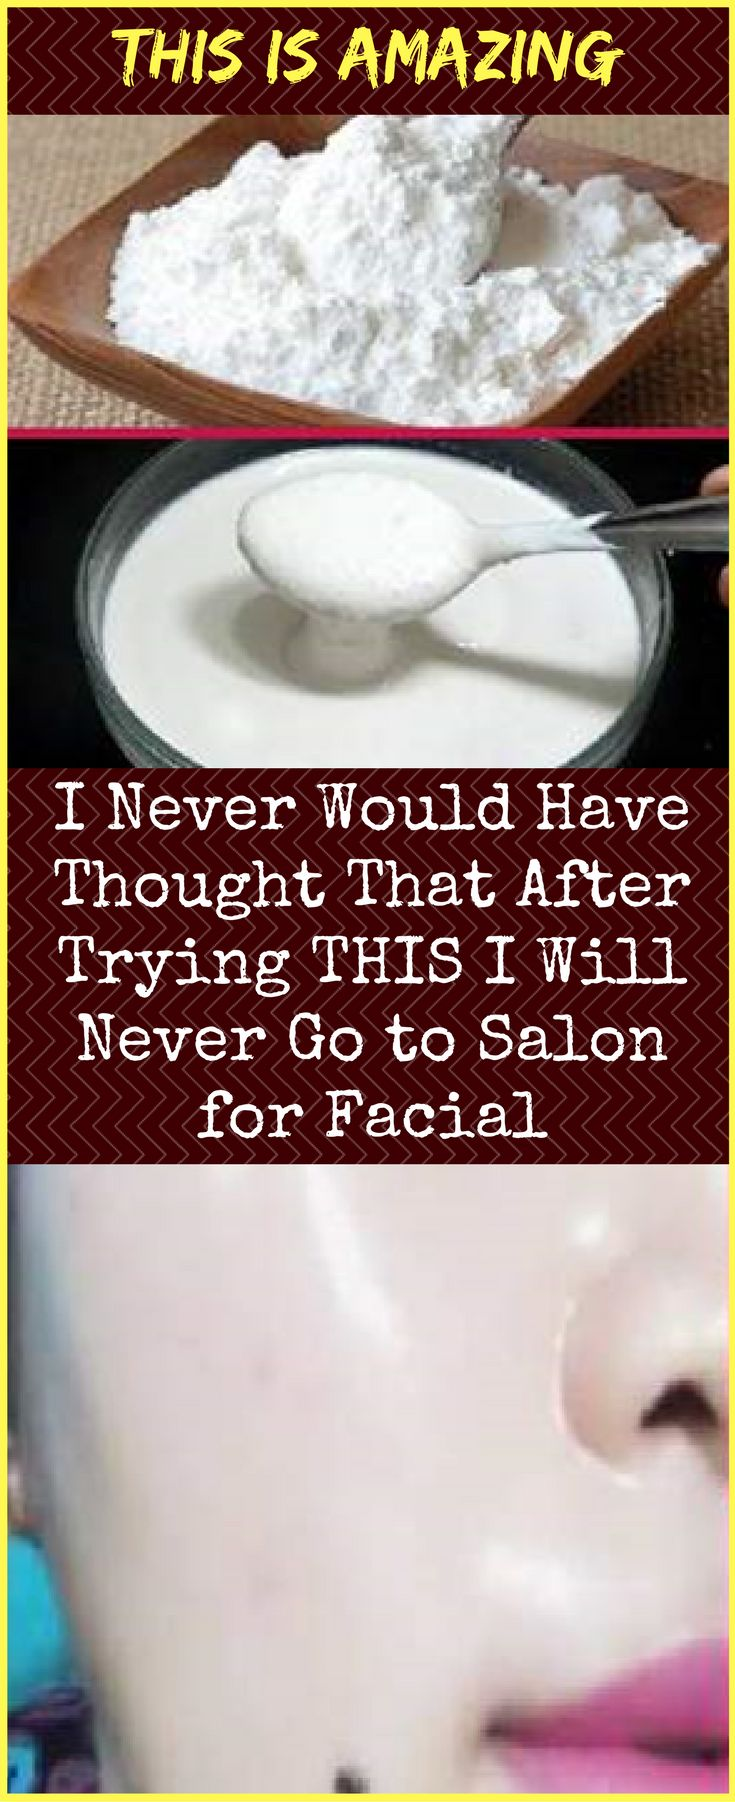 This is AMAZING: I Never Would Have Thought That After Trying THIS I Will Never Go to Salon for Facial